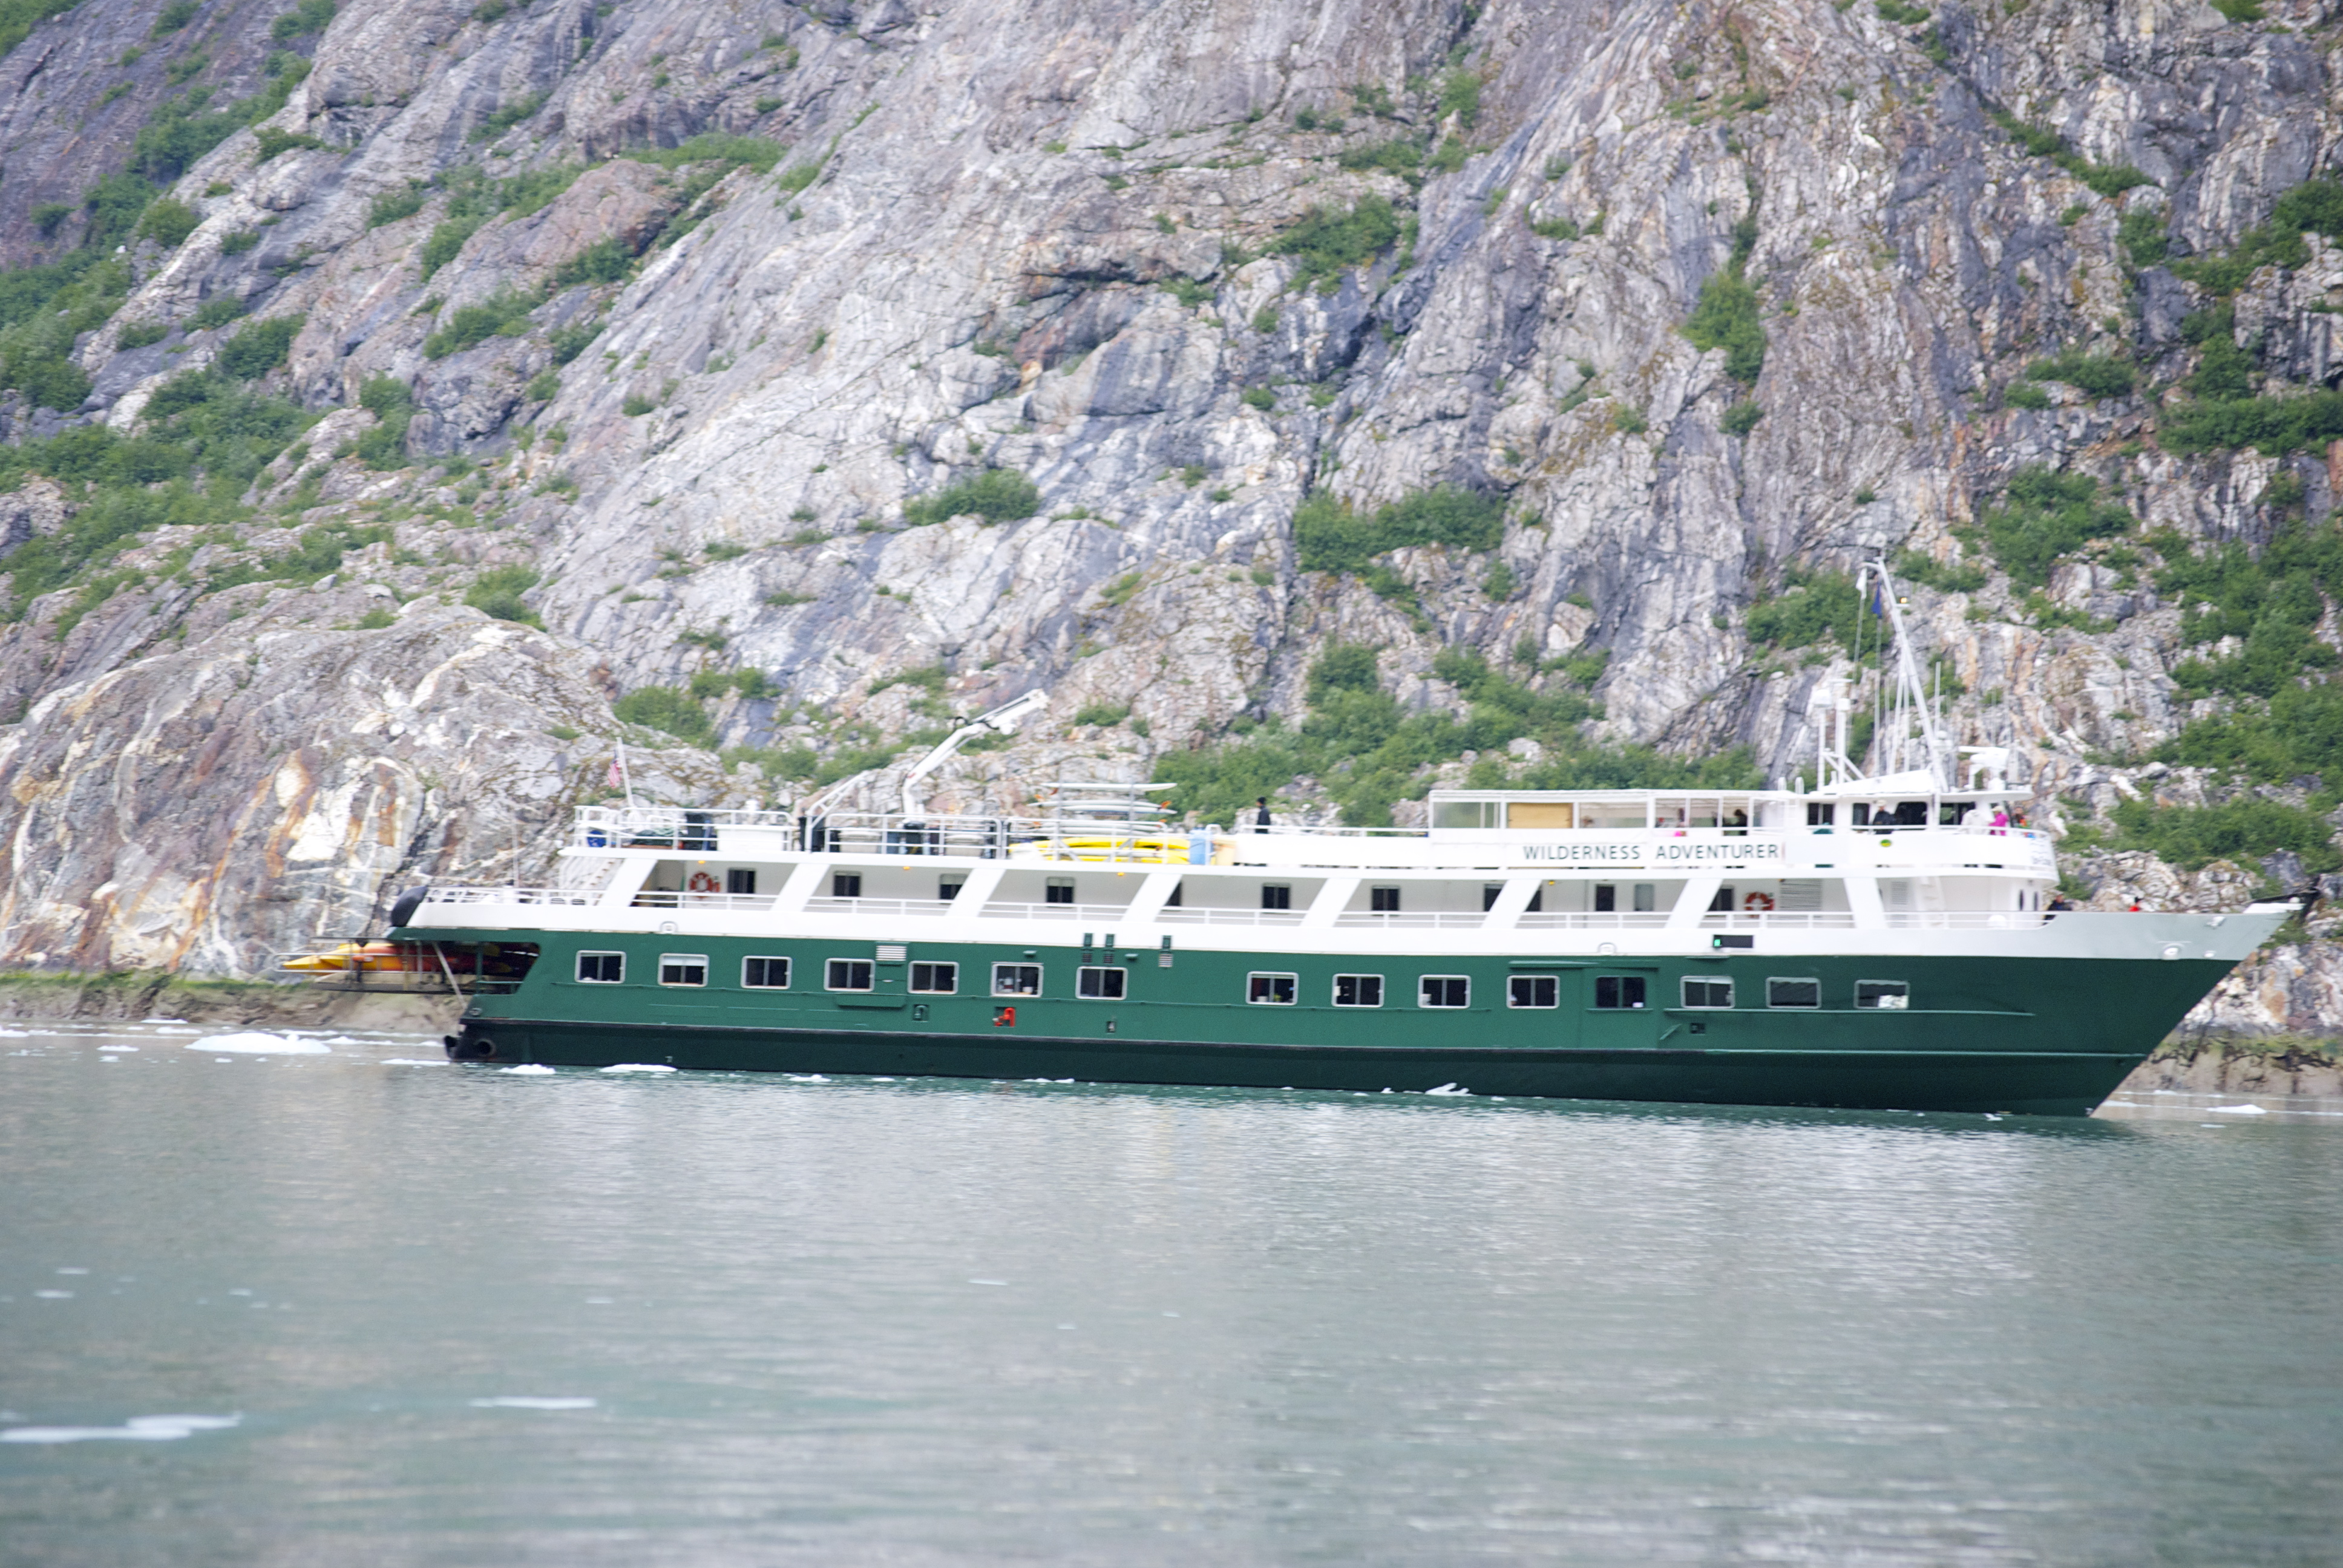 Alaska Small Ship Cruising What You Need To Know AK On The GO - Small ship cruises